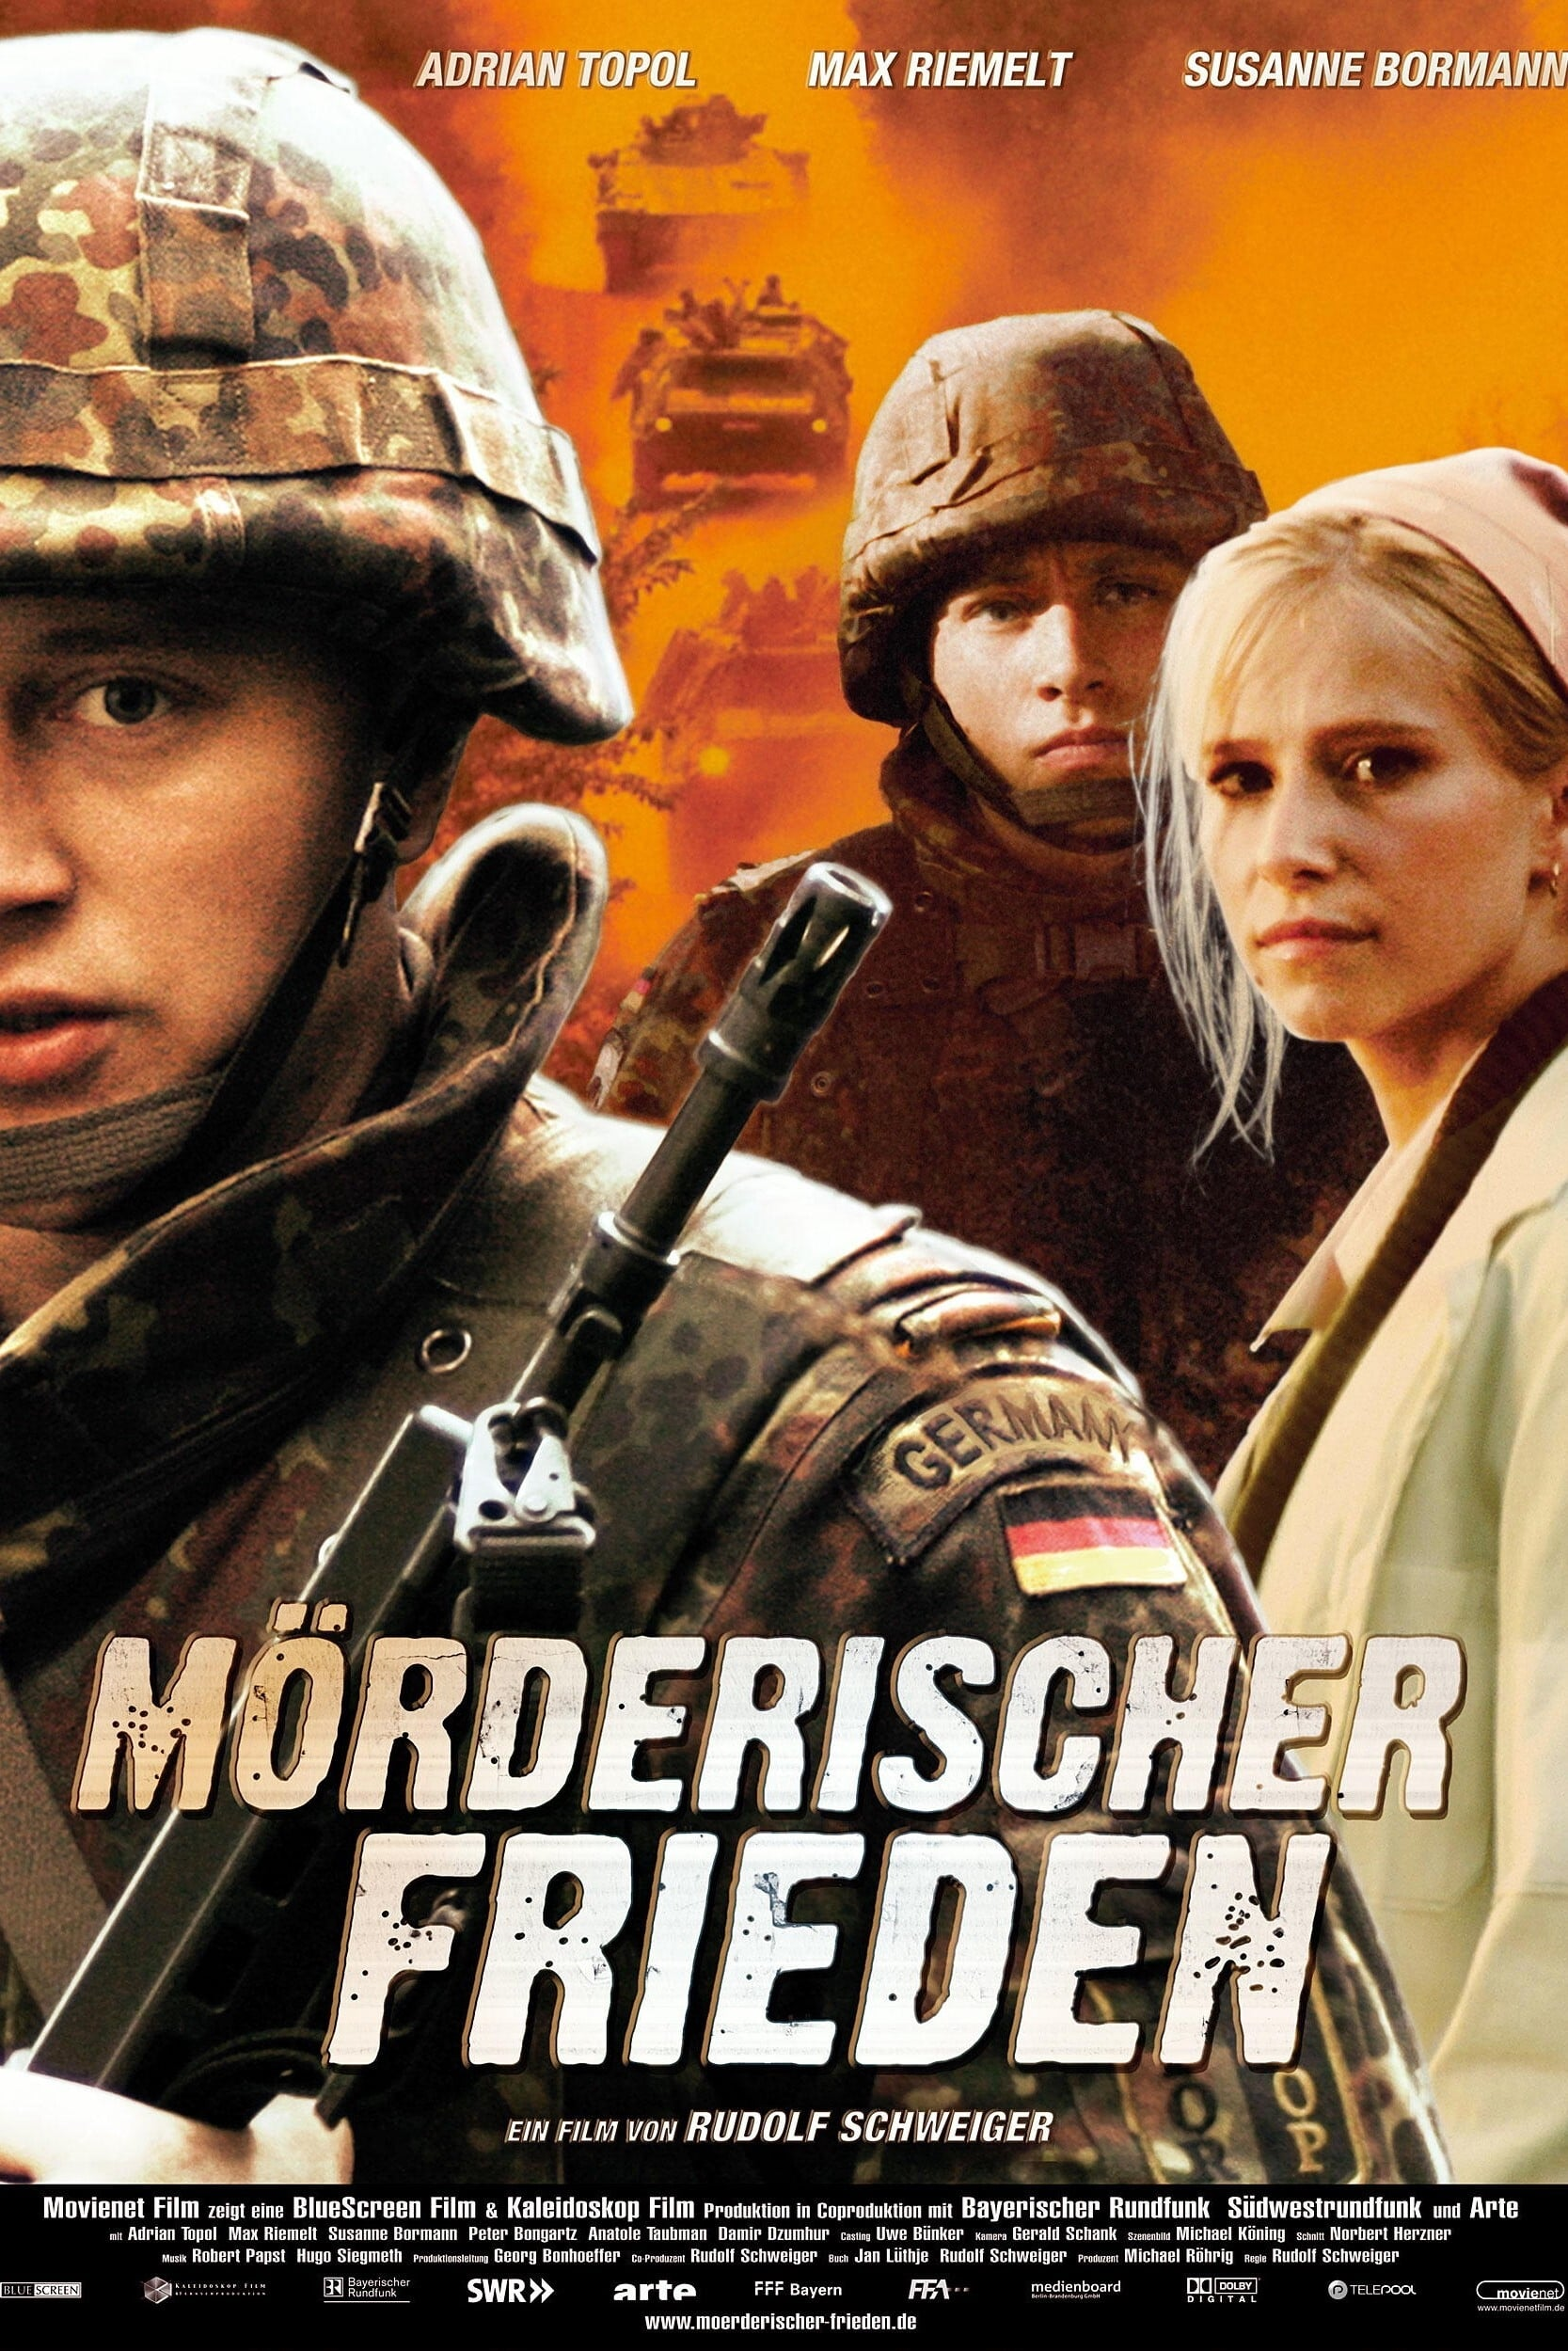 Watch Snipers Valley (2007) Full Movie Online Free   Stream Free Movies & TV Shows